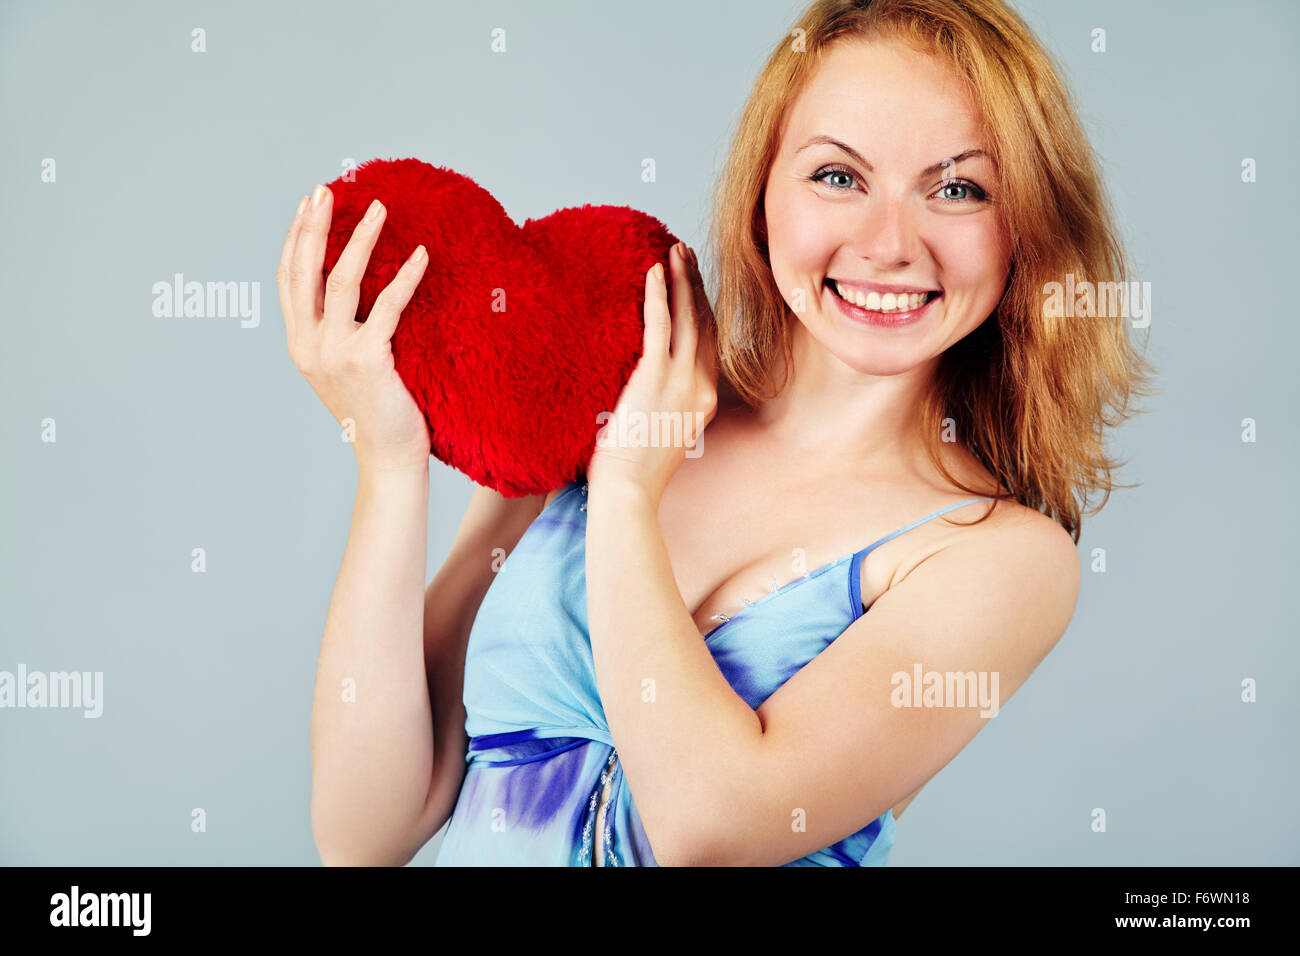 woman waiting for Valentine's Day - Stock Image